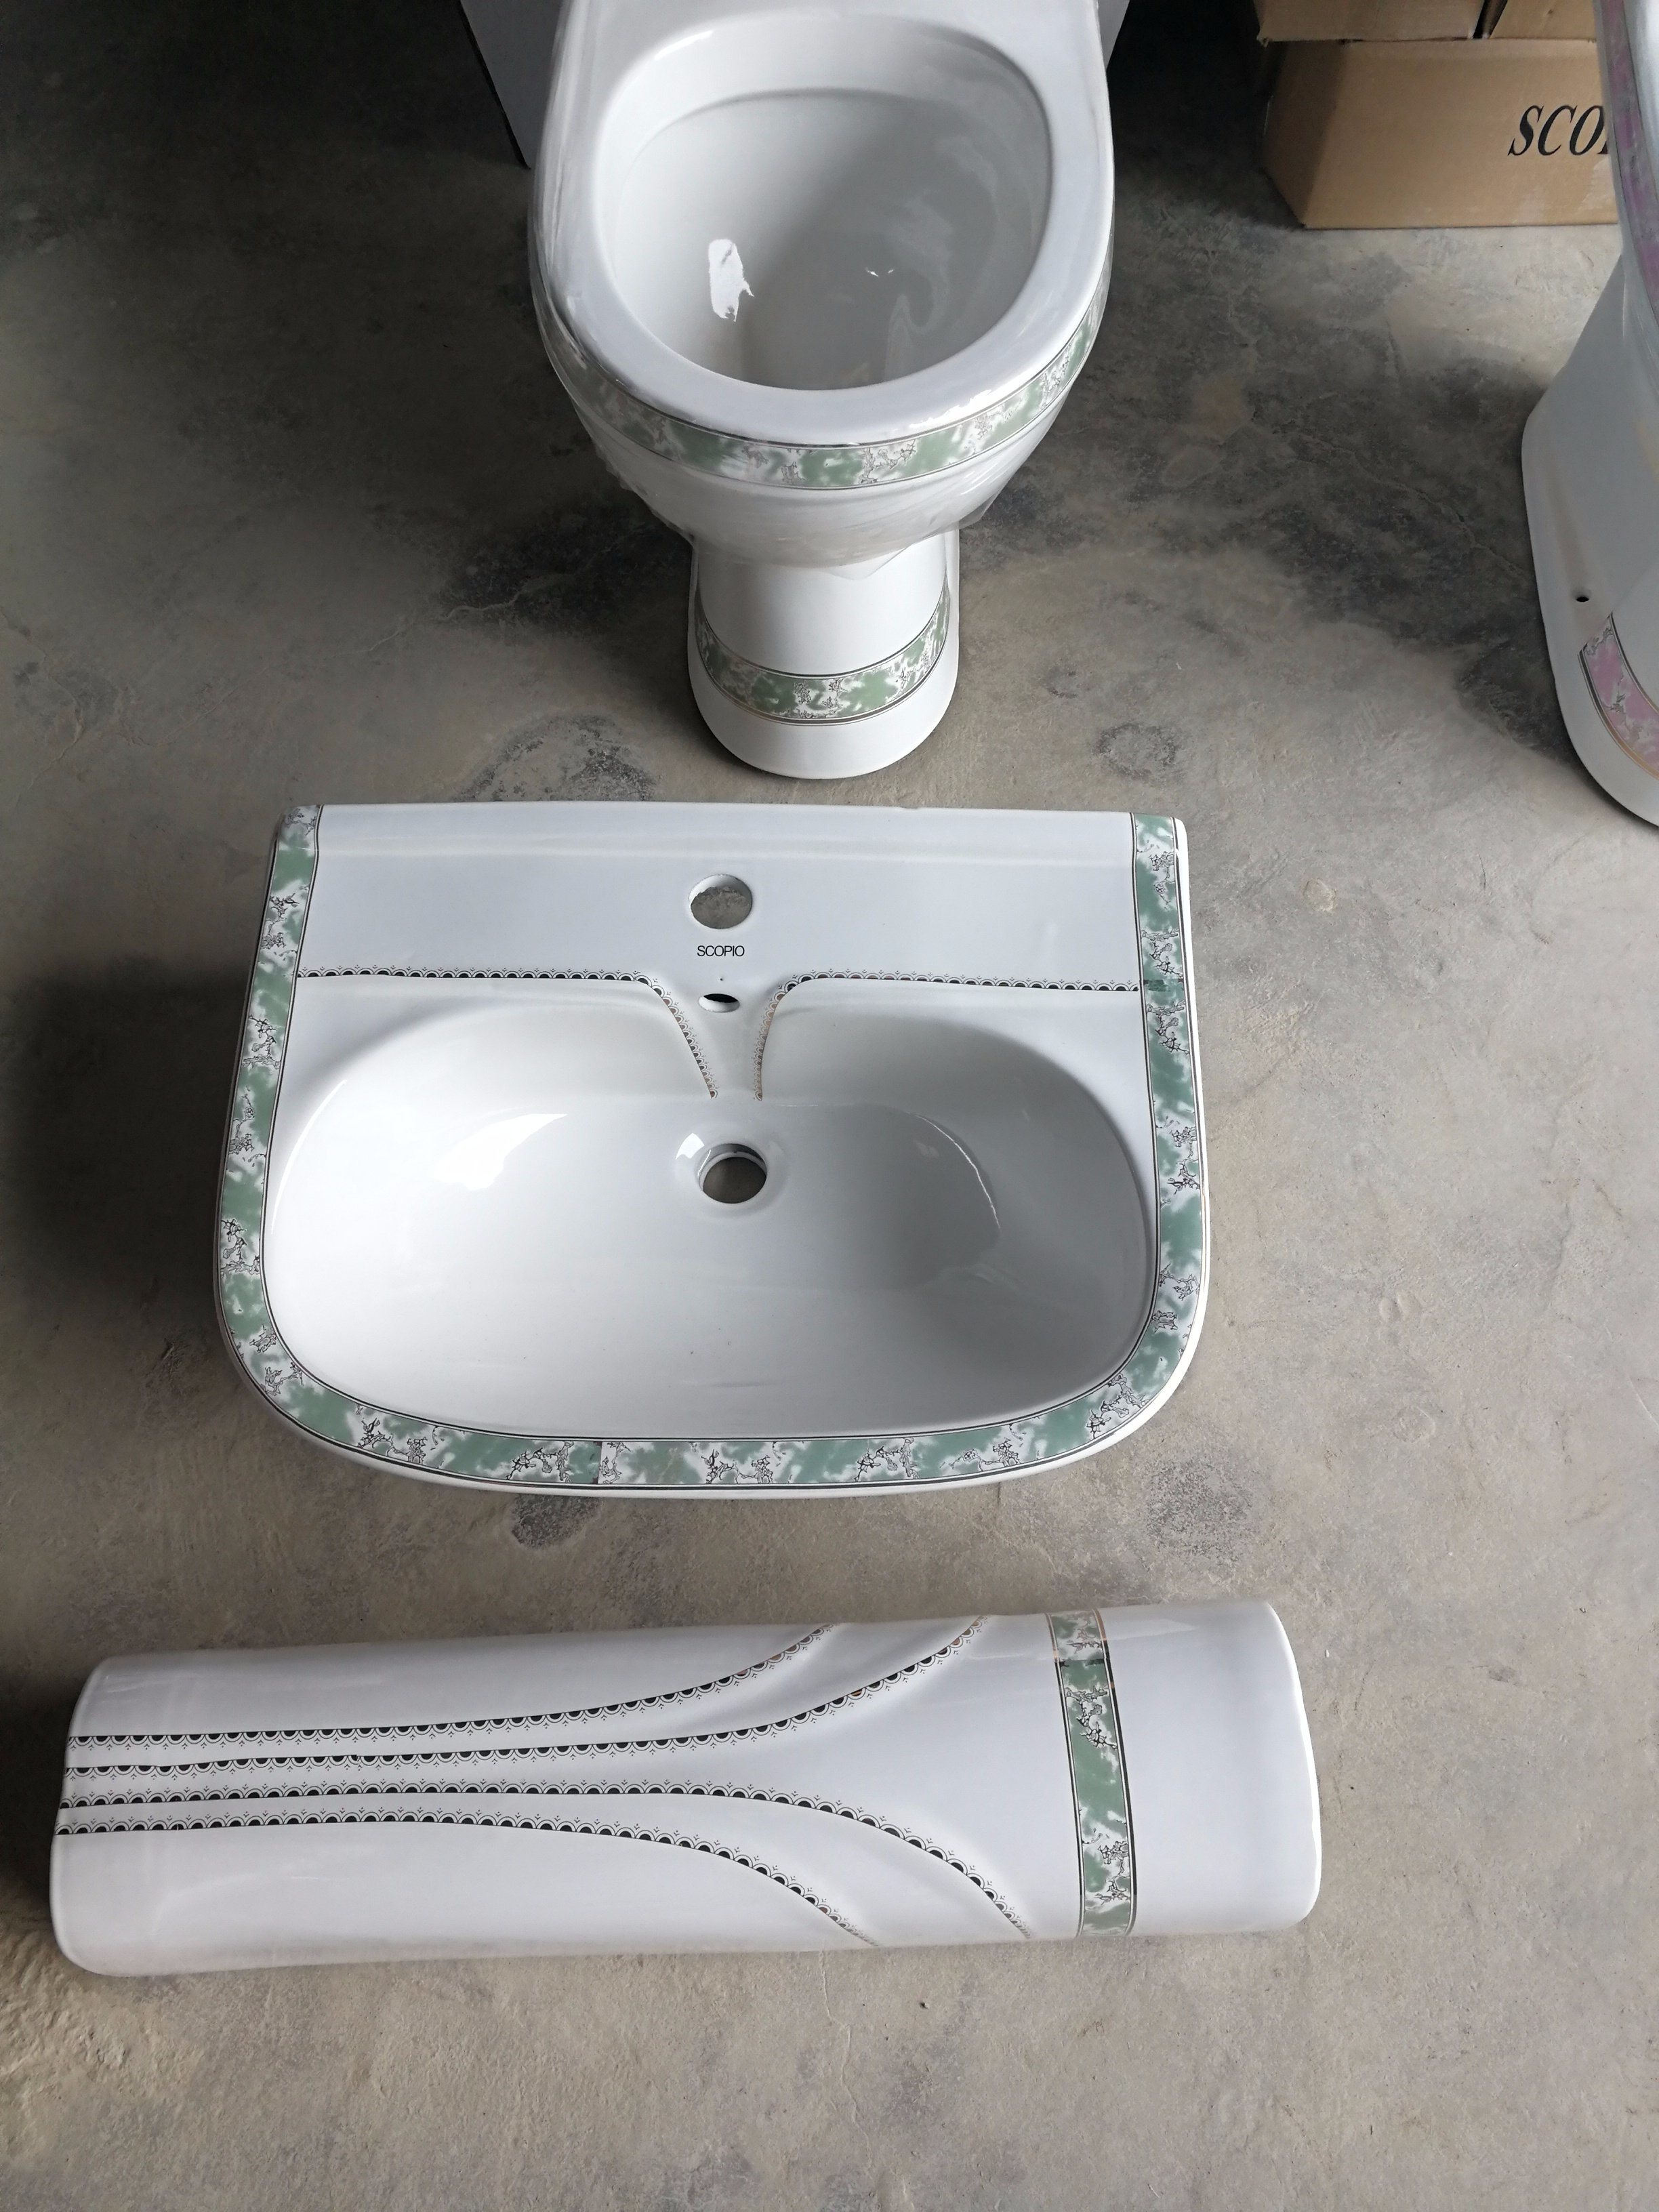 Chaozhou Factory Sanitary Ware Ceramic Decorative Pedestal Basin for Kuwait